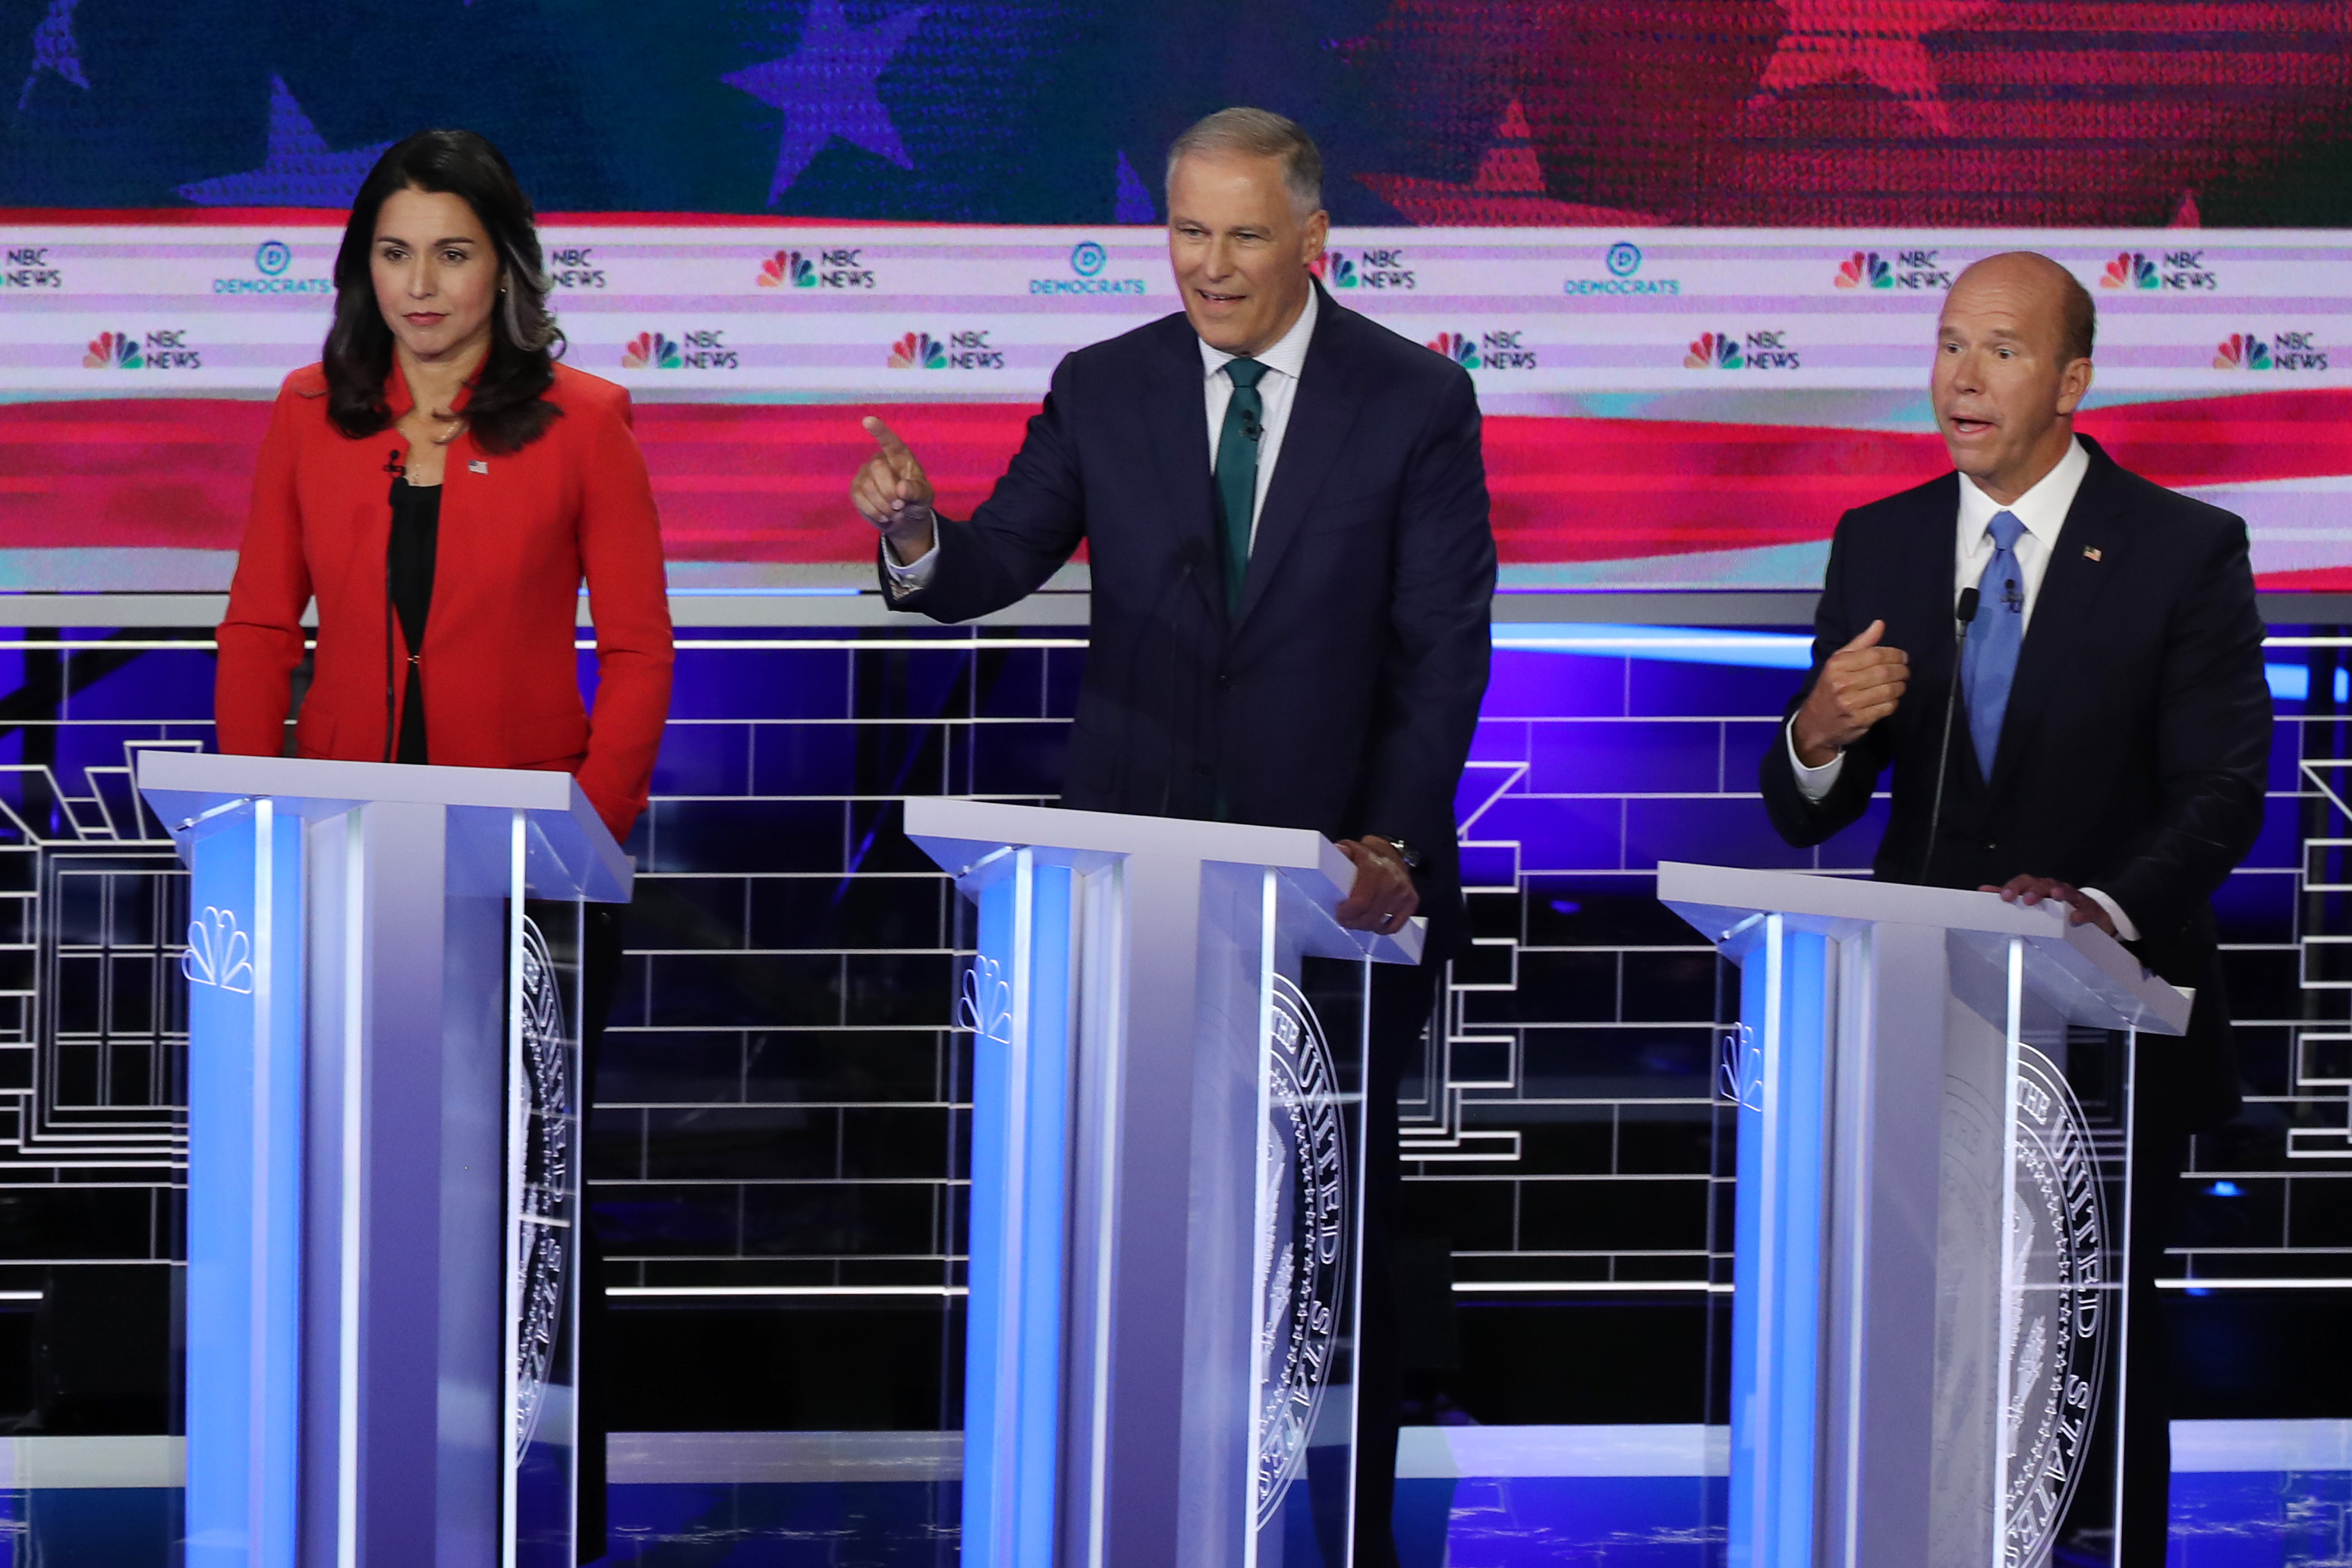 (L-R) Rep. Tulsi Gabbard, Washington Gov. Jay Inslee and former Maryland congressman John Delaney take part in the first night of the Democratic presidential debate on June 26, 2019 in Miami, Florida. (Photo by Joe Raedle/Getty Images)